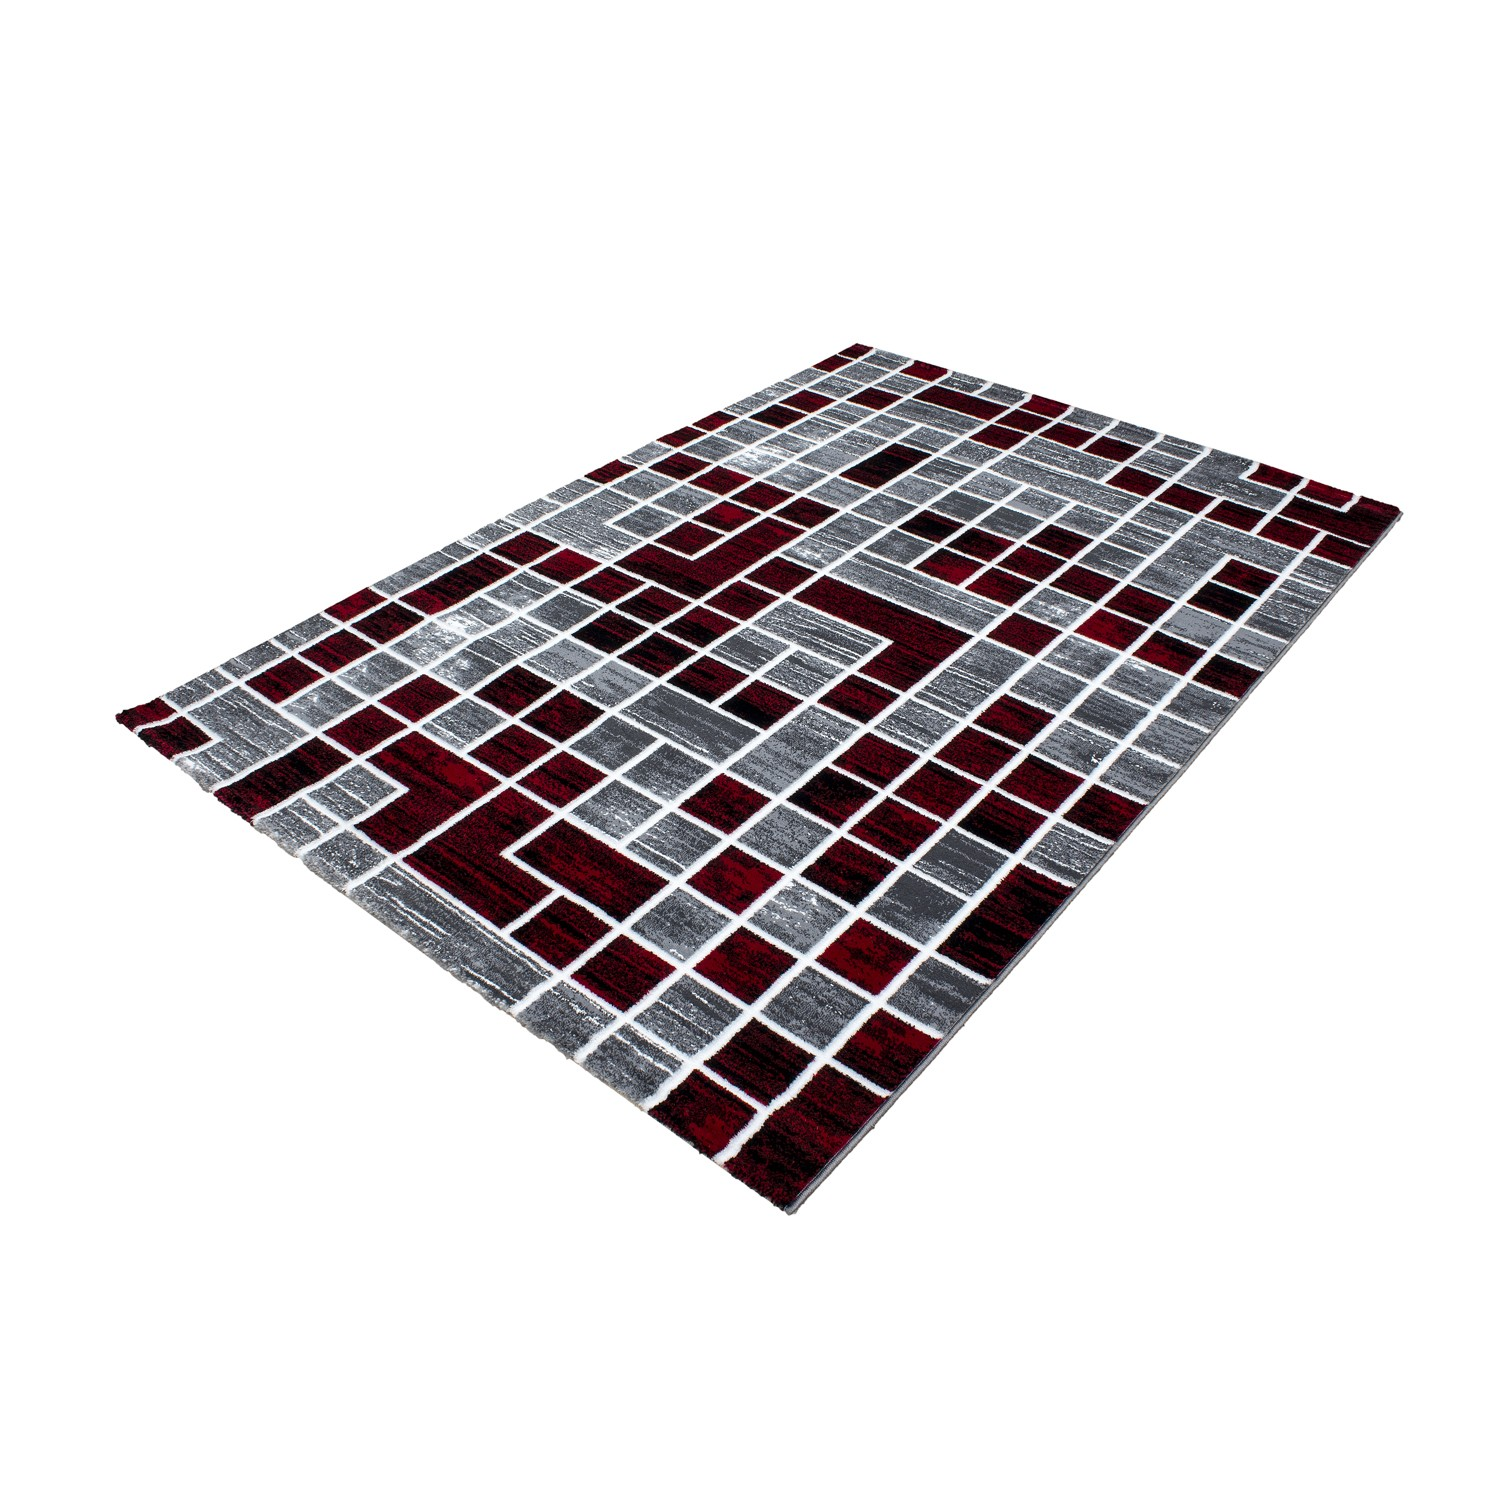 D coration tapis salon rouge pas cher 12 nimes tapis for Tapis salon chez conforama